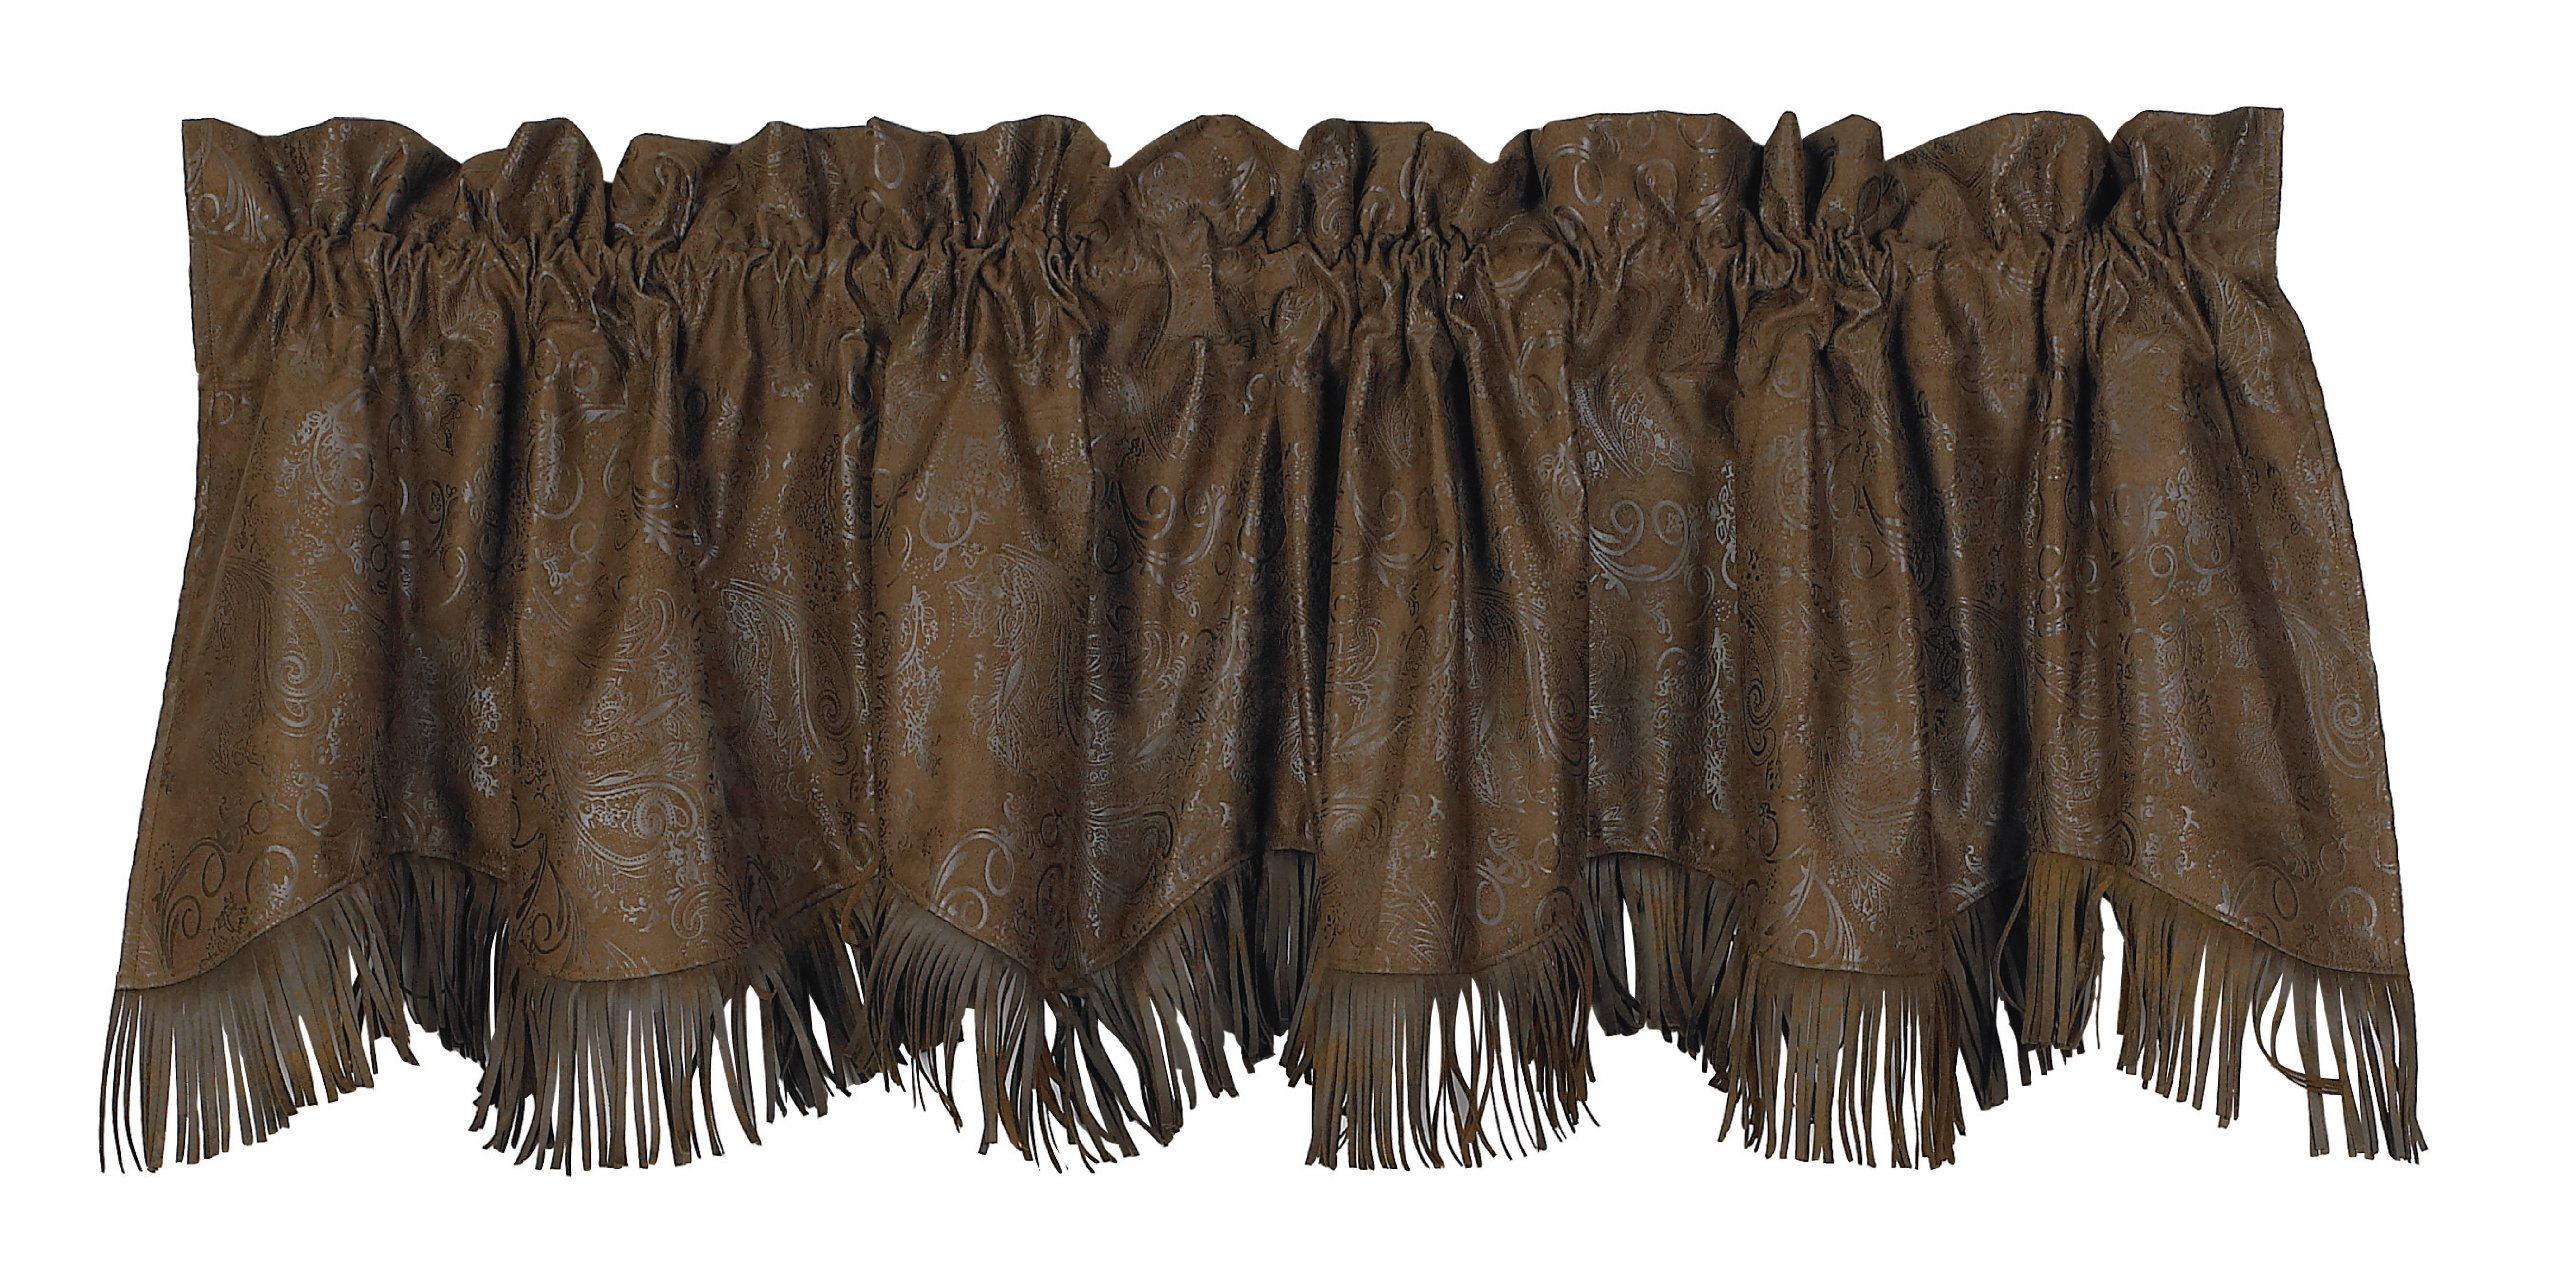 HiEnd Accents Faux Tooled Leather Western Valance, 4'2'' x 5' - VL1004 by HiEnd Accents